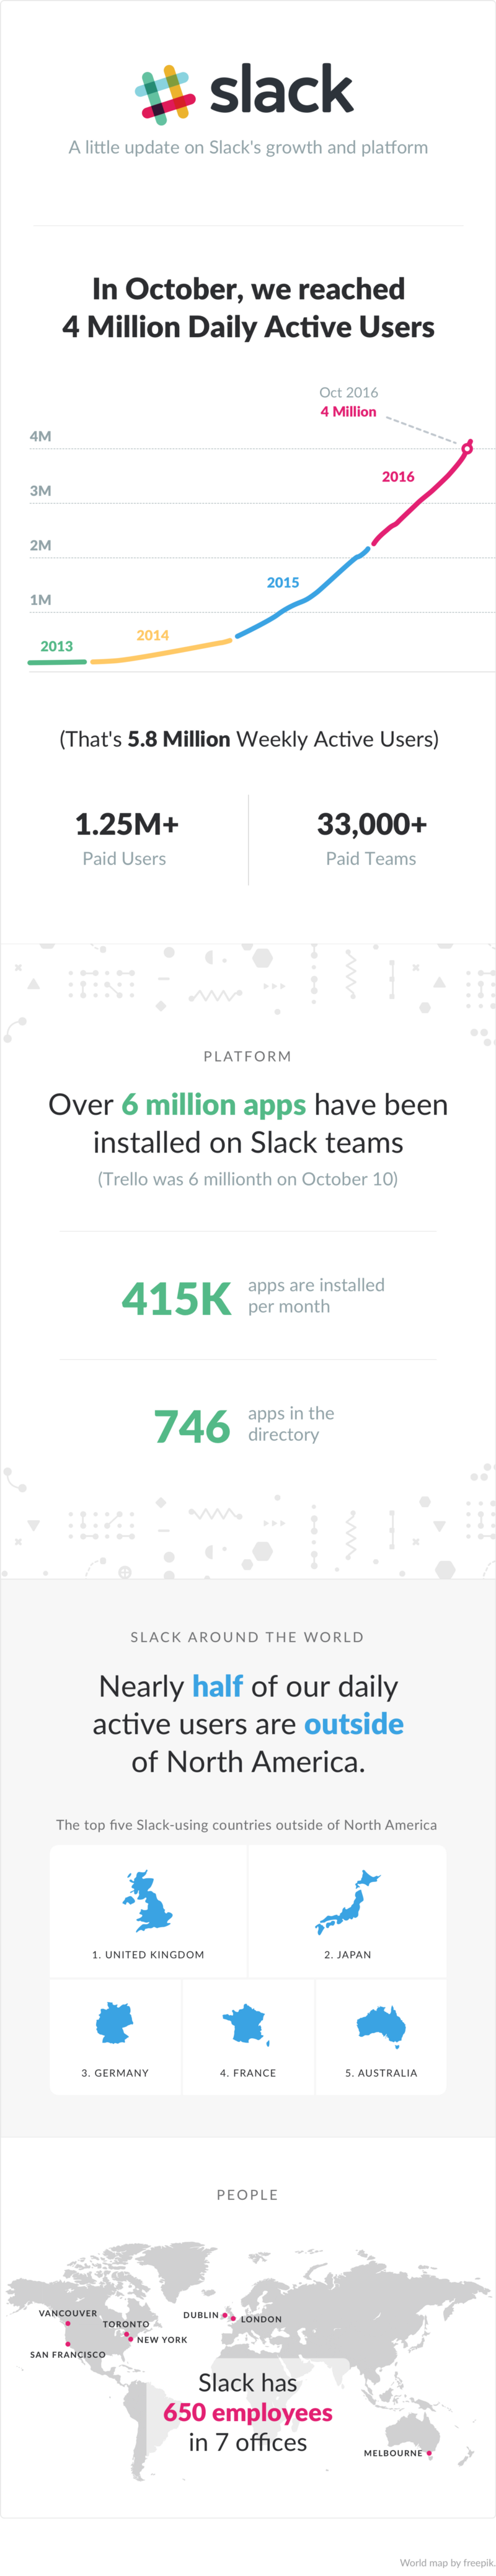 Slack growth at Nov. 2nd 2016